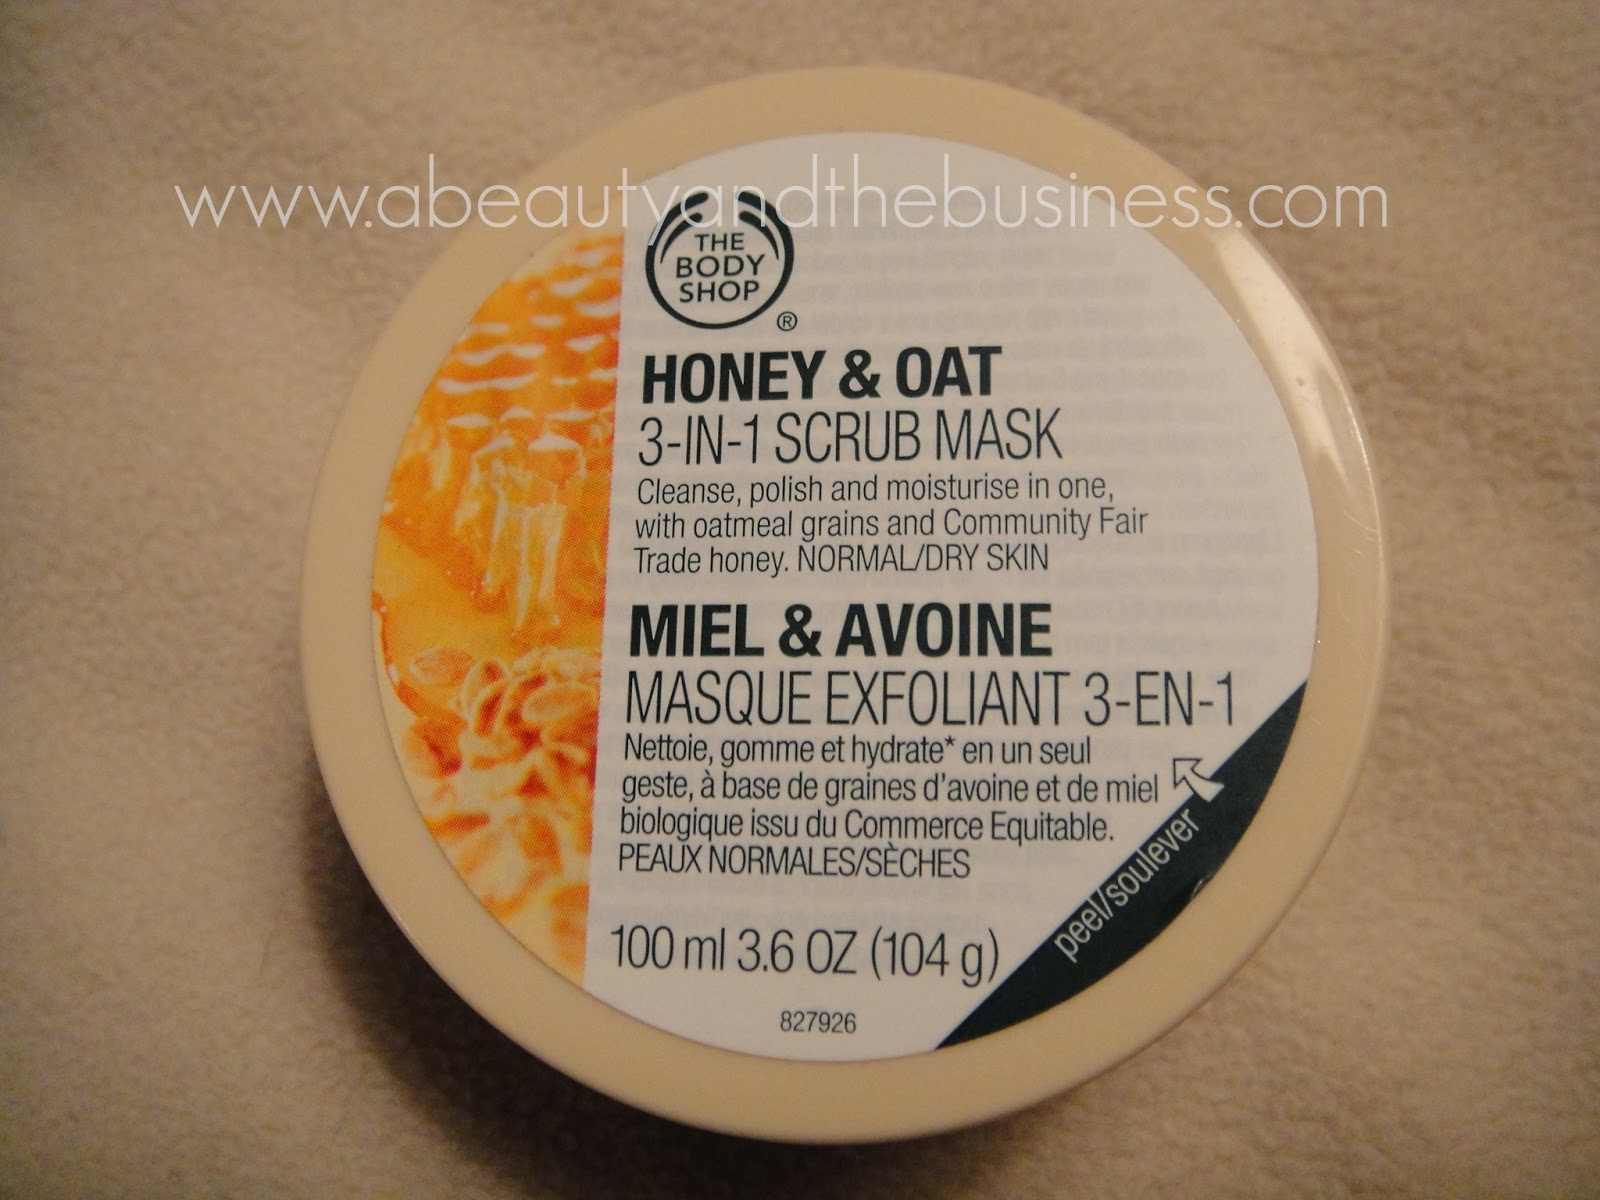 The Body Shop Honey and Oat 3-in-1 Scrub Mask Review, honey and oat mask review, the body shop mask review, the body shop honey and oat mask review, honey and oat scrub review,